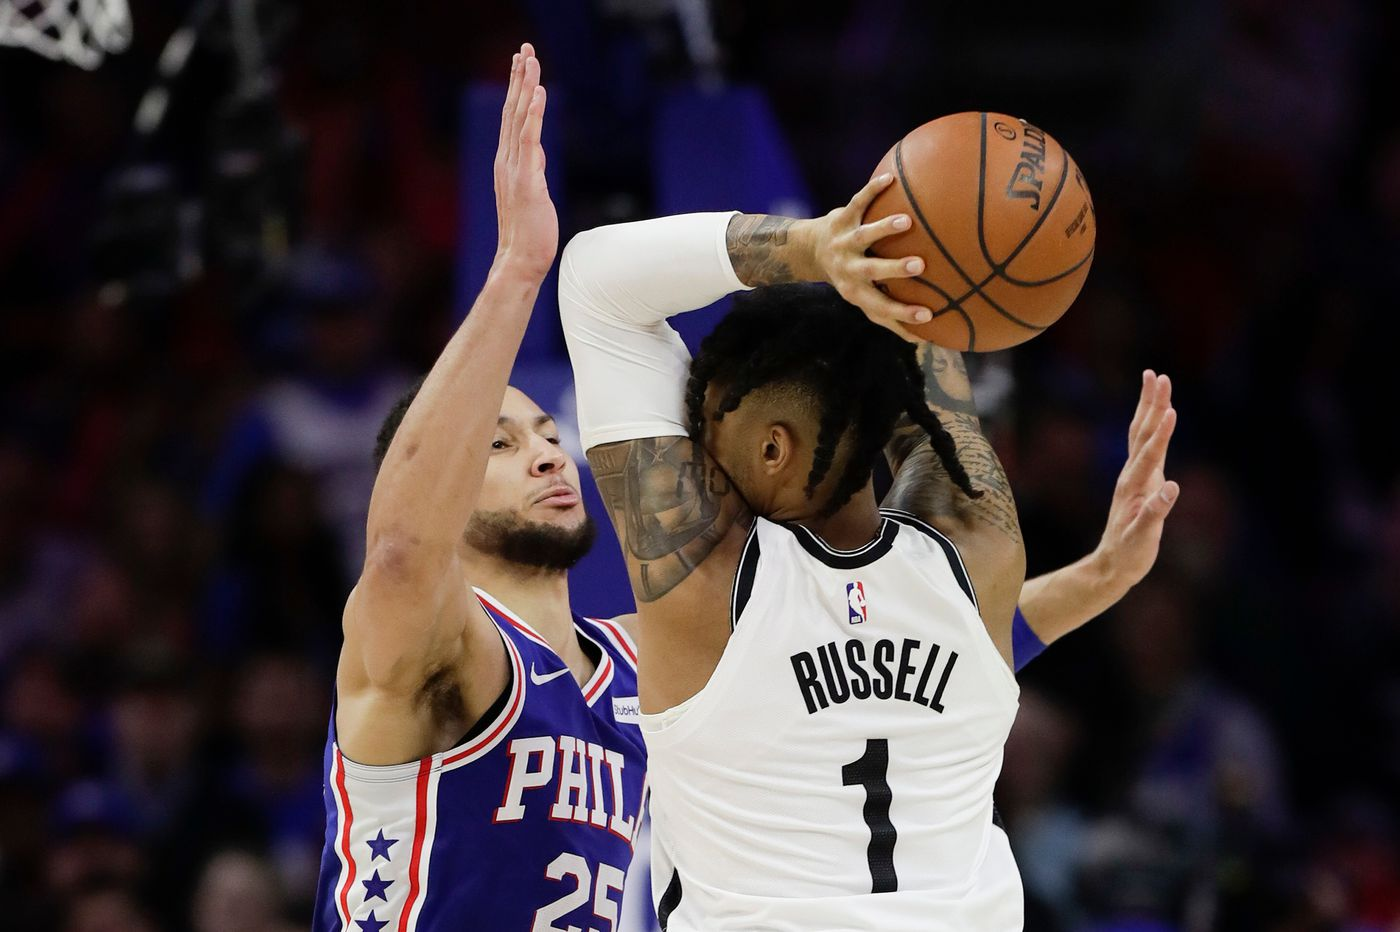 Brooklyn Nets seem to be running out of moves against Sixers